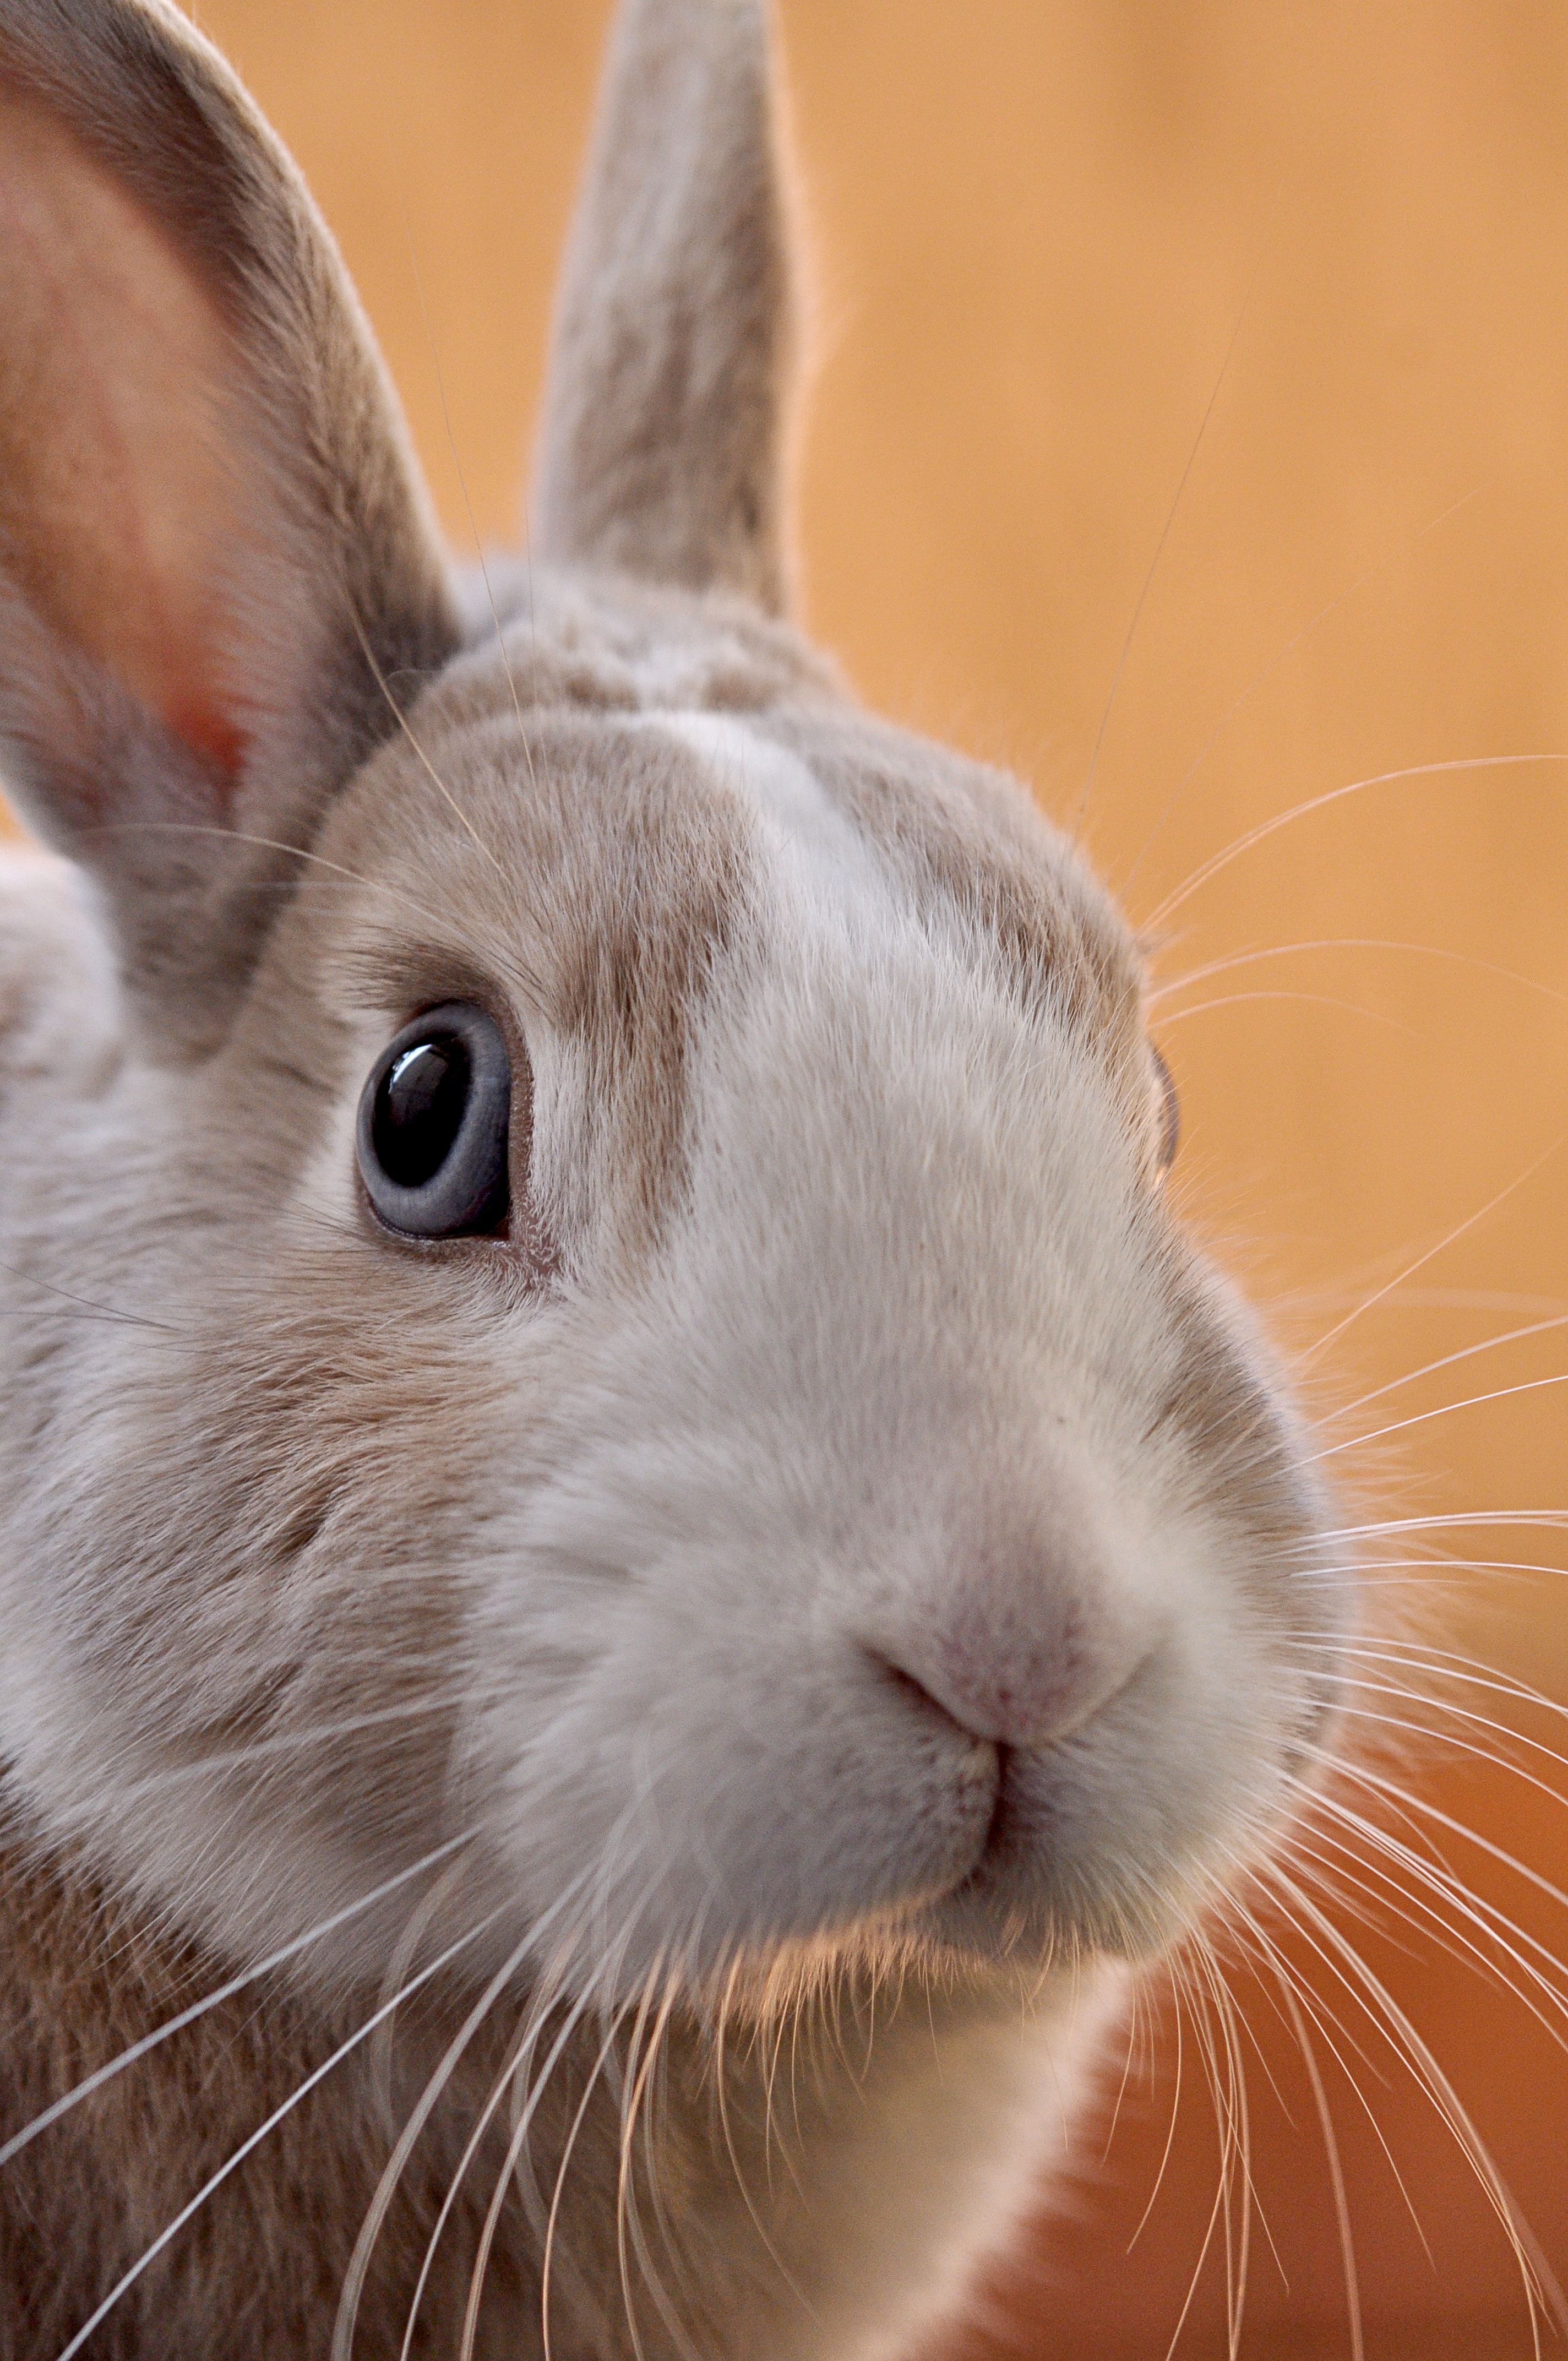 closeup photo of gray rabbit